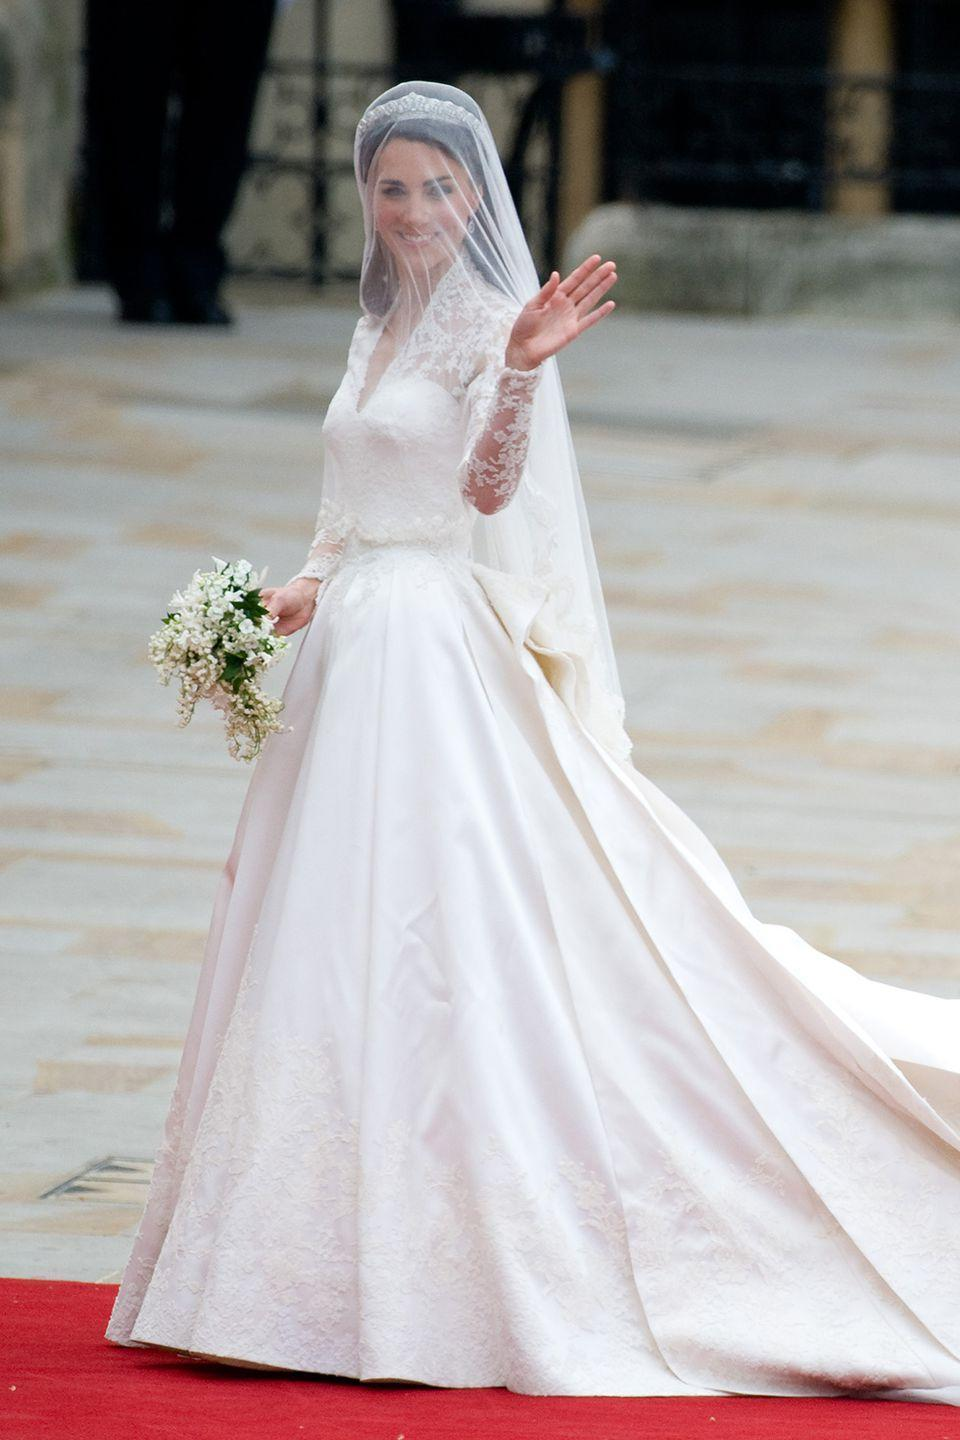 <p>Practically the whole world was watching when the Duchess of Cambridge arrived at Westminster Abbey to wed Prince William. Designed by Sarah Burton for Alexander McQueen, the dress sparked a million copycats - and a celebration of lace sleeves.</p>